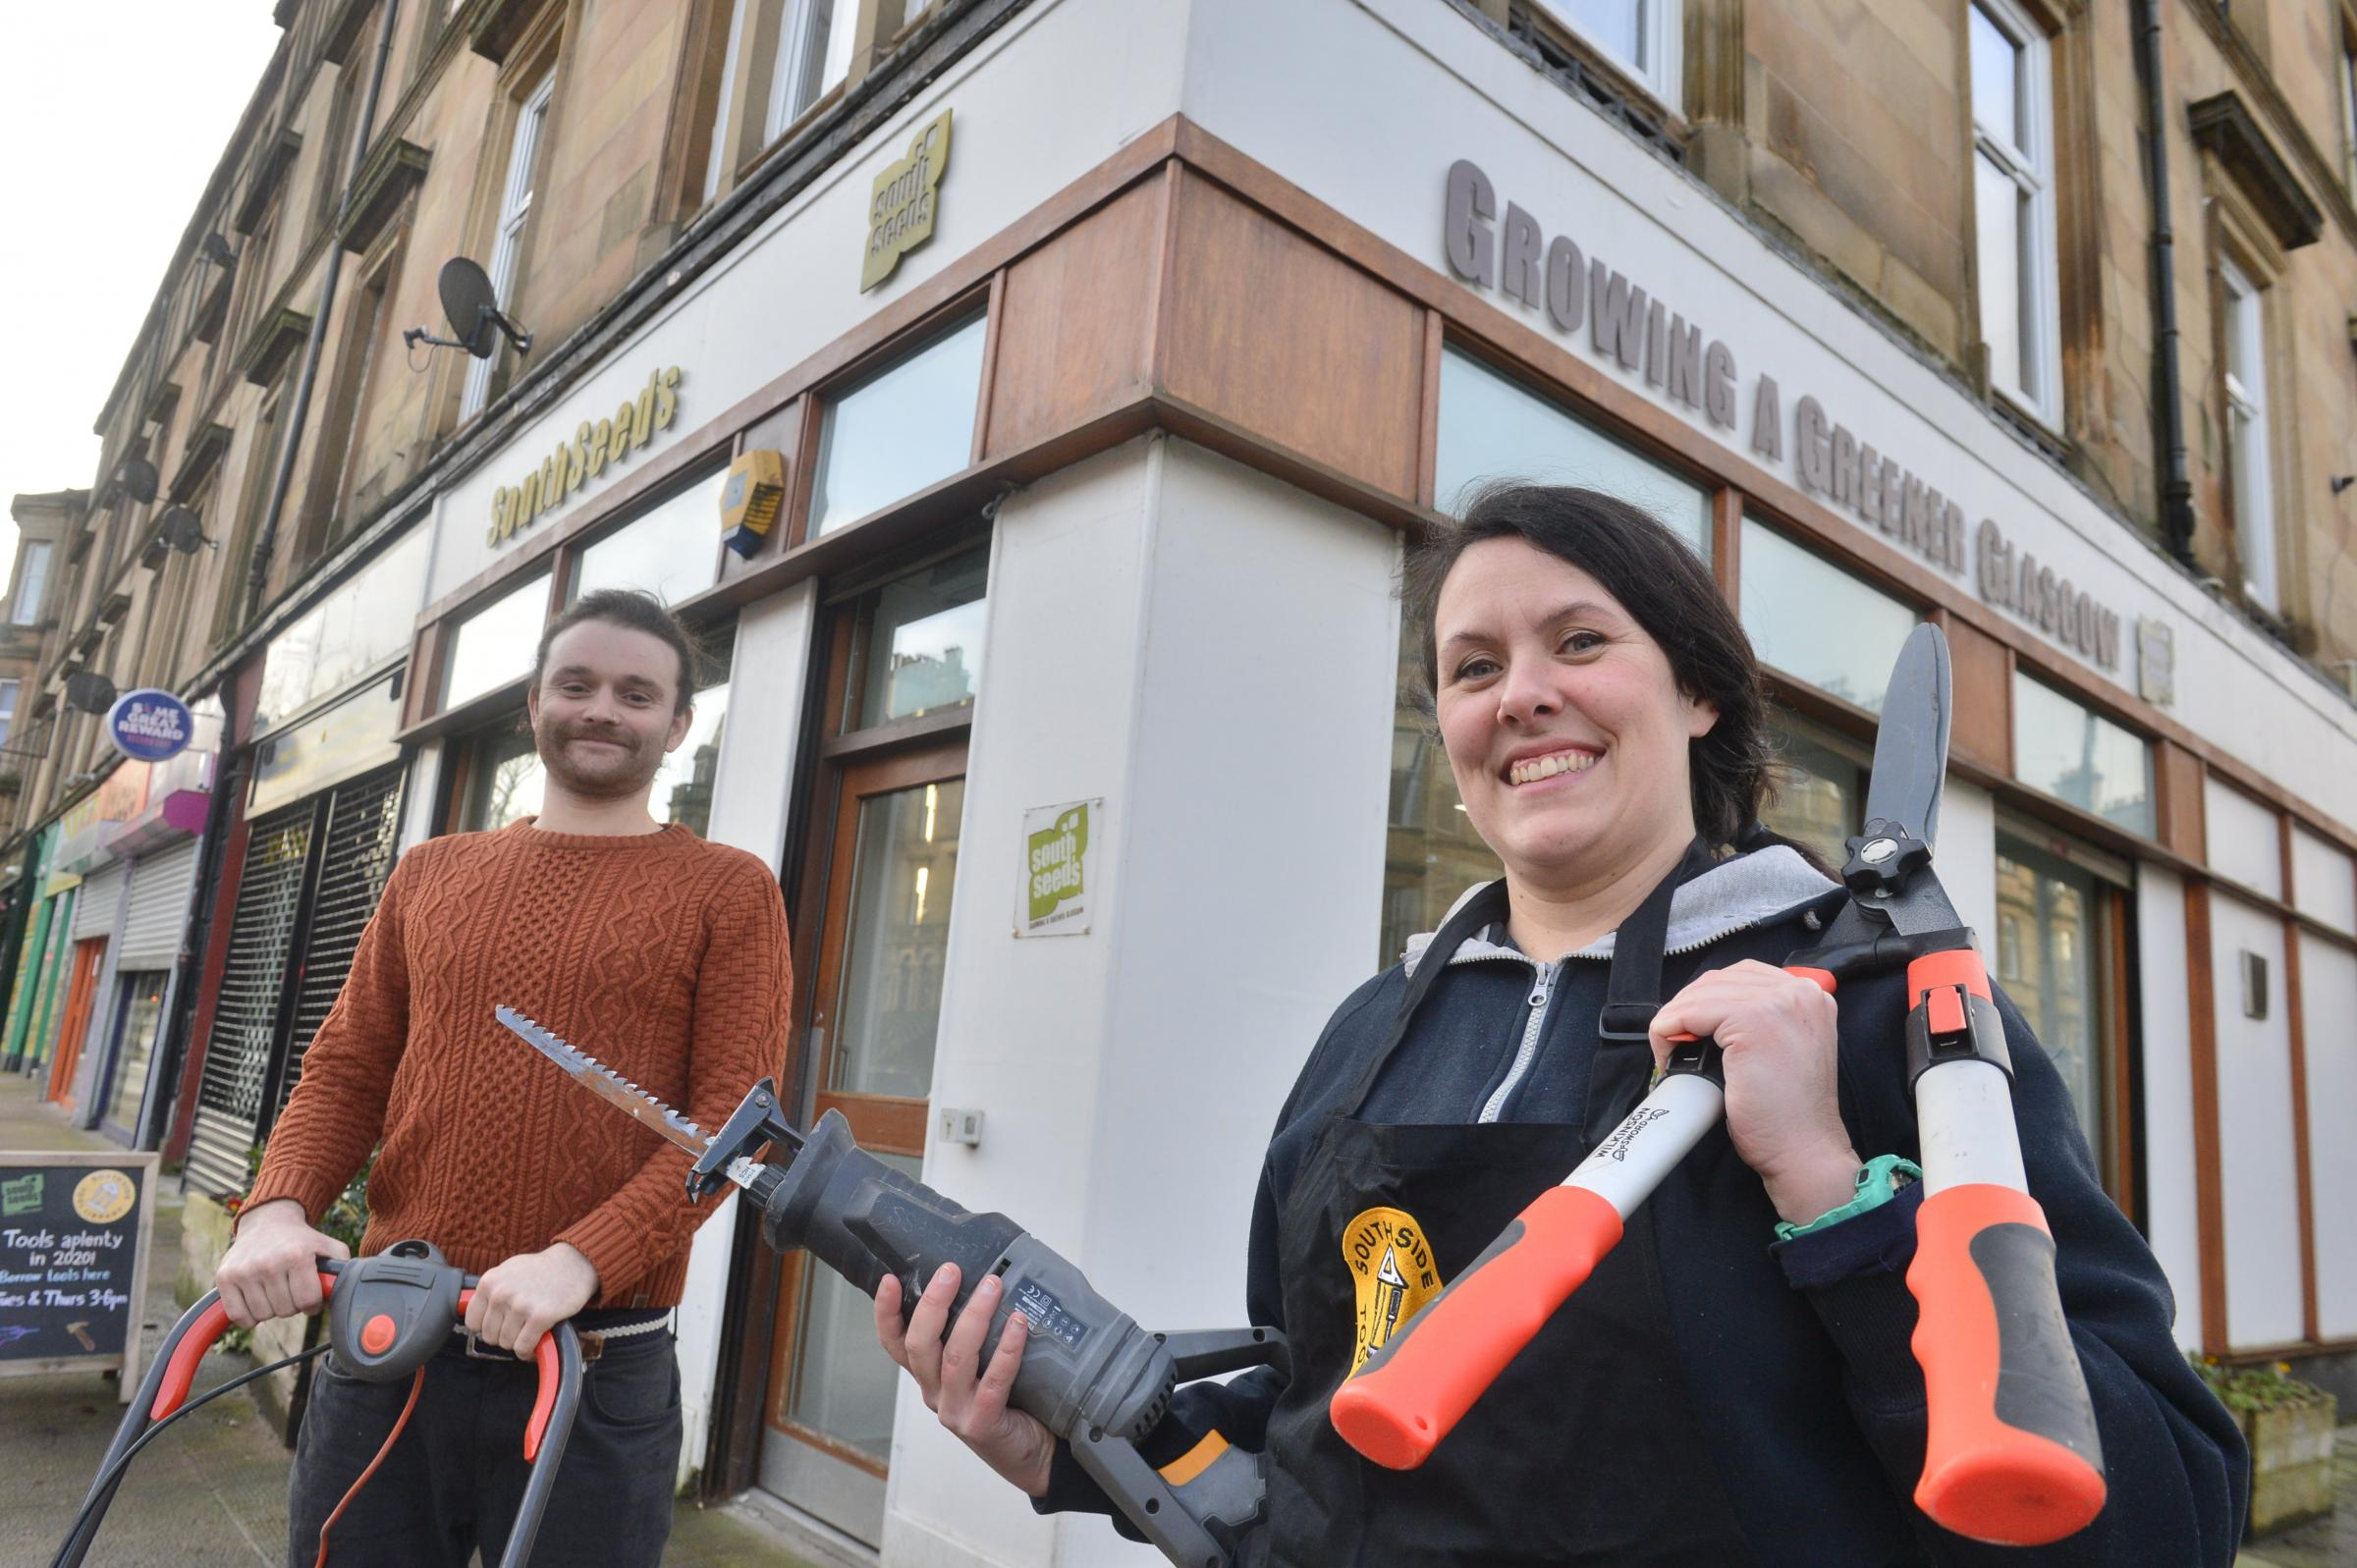 The Glasgow tool library project helping to build community spirit